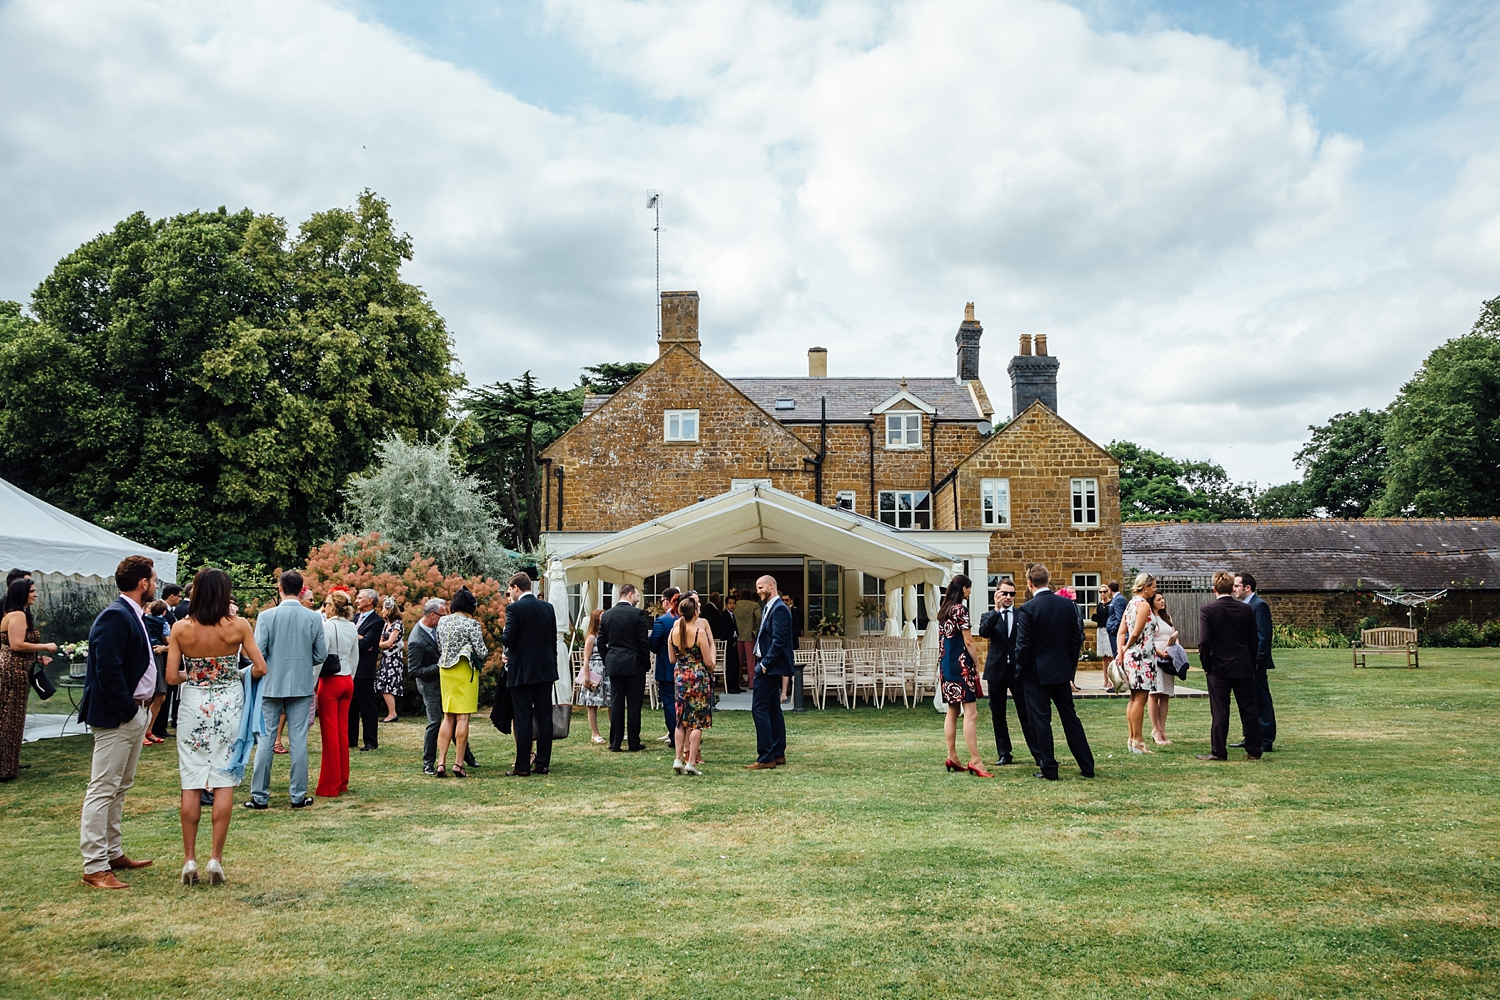 alexvictor-blog-natural-fun-relaxed-documentary-charlotte-jopling-wedding-photography-northamptonshire-home-garden-country-summer-19.jpg